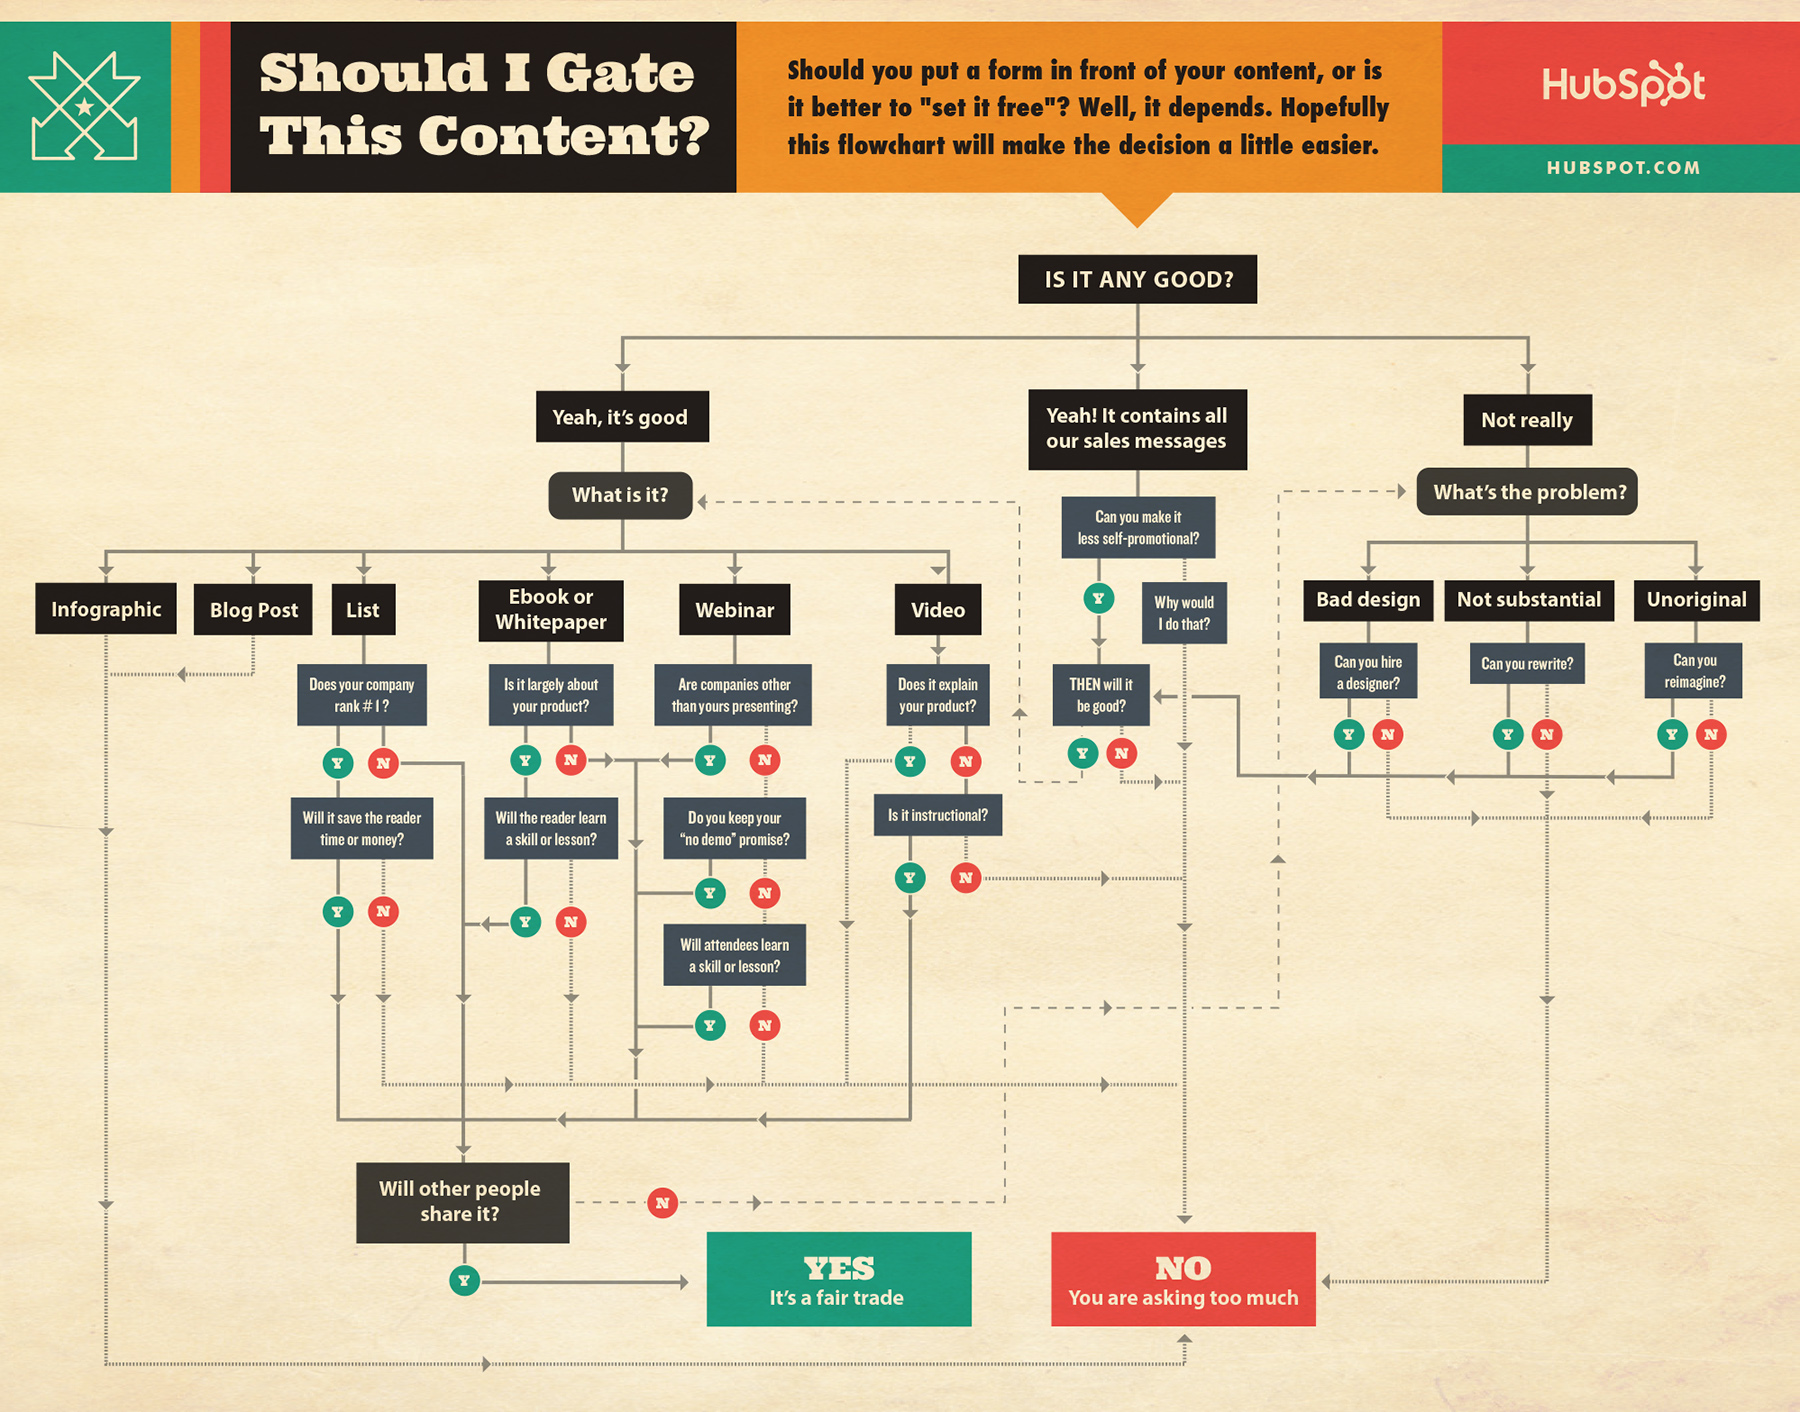 Should-I-Gate-Content-Flowchart-HubSpot